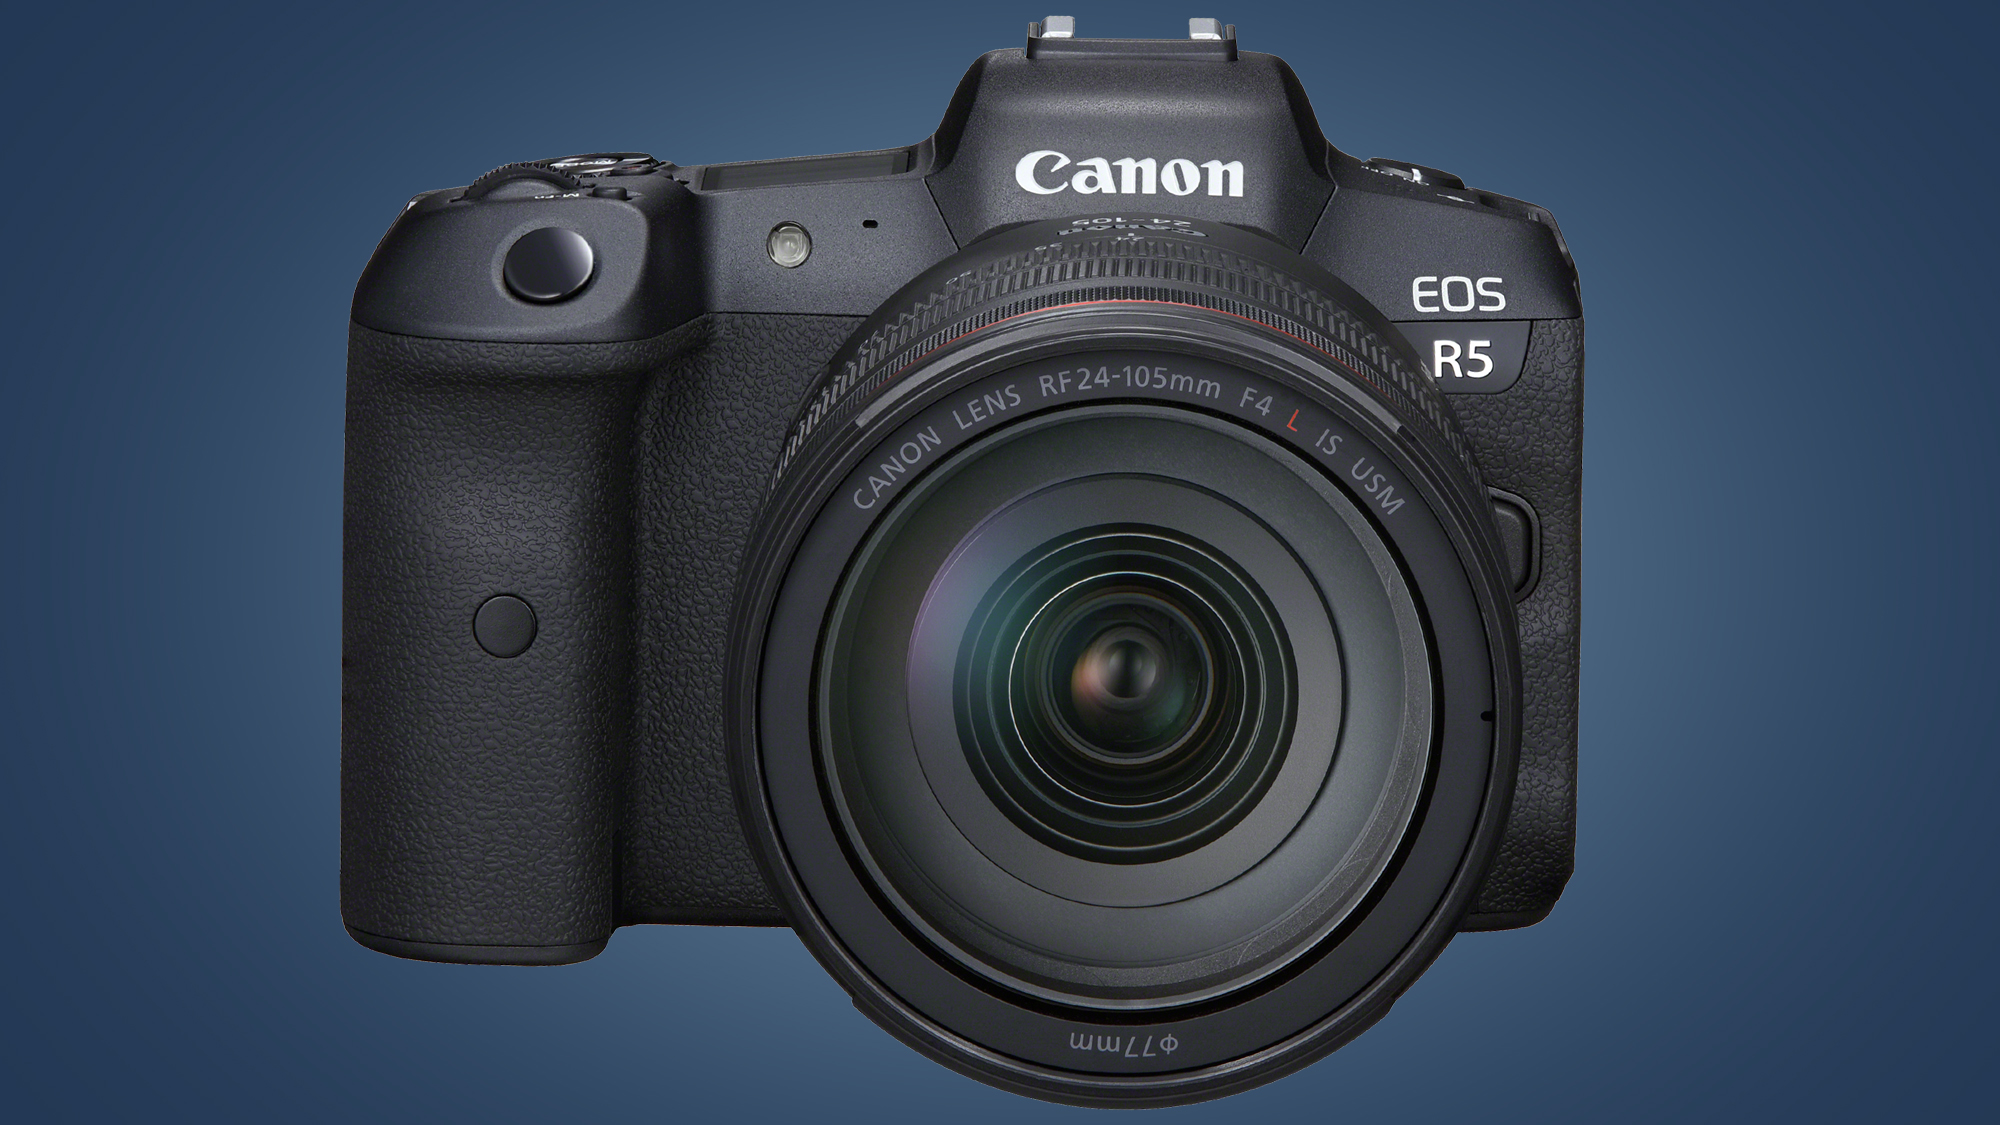 The Canon EOS R5 is officially the world's most powerful hybrid camera thumbnail